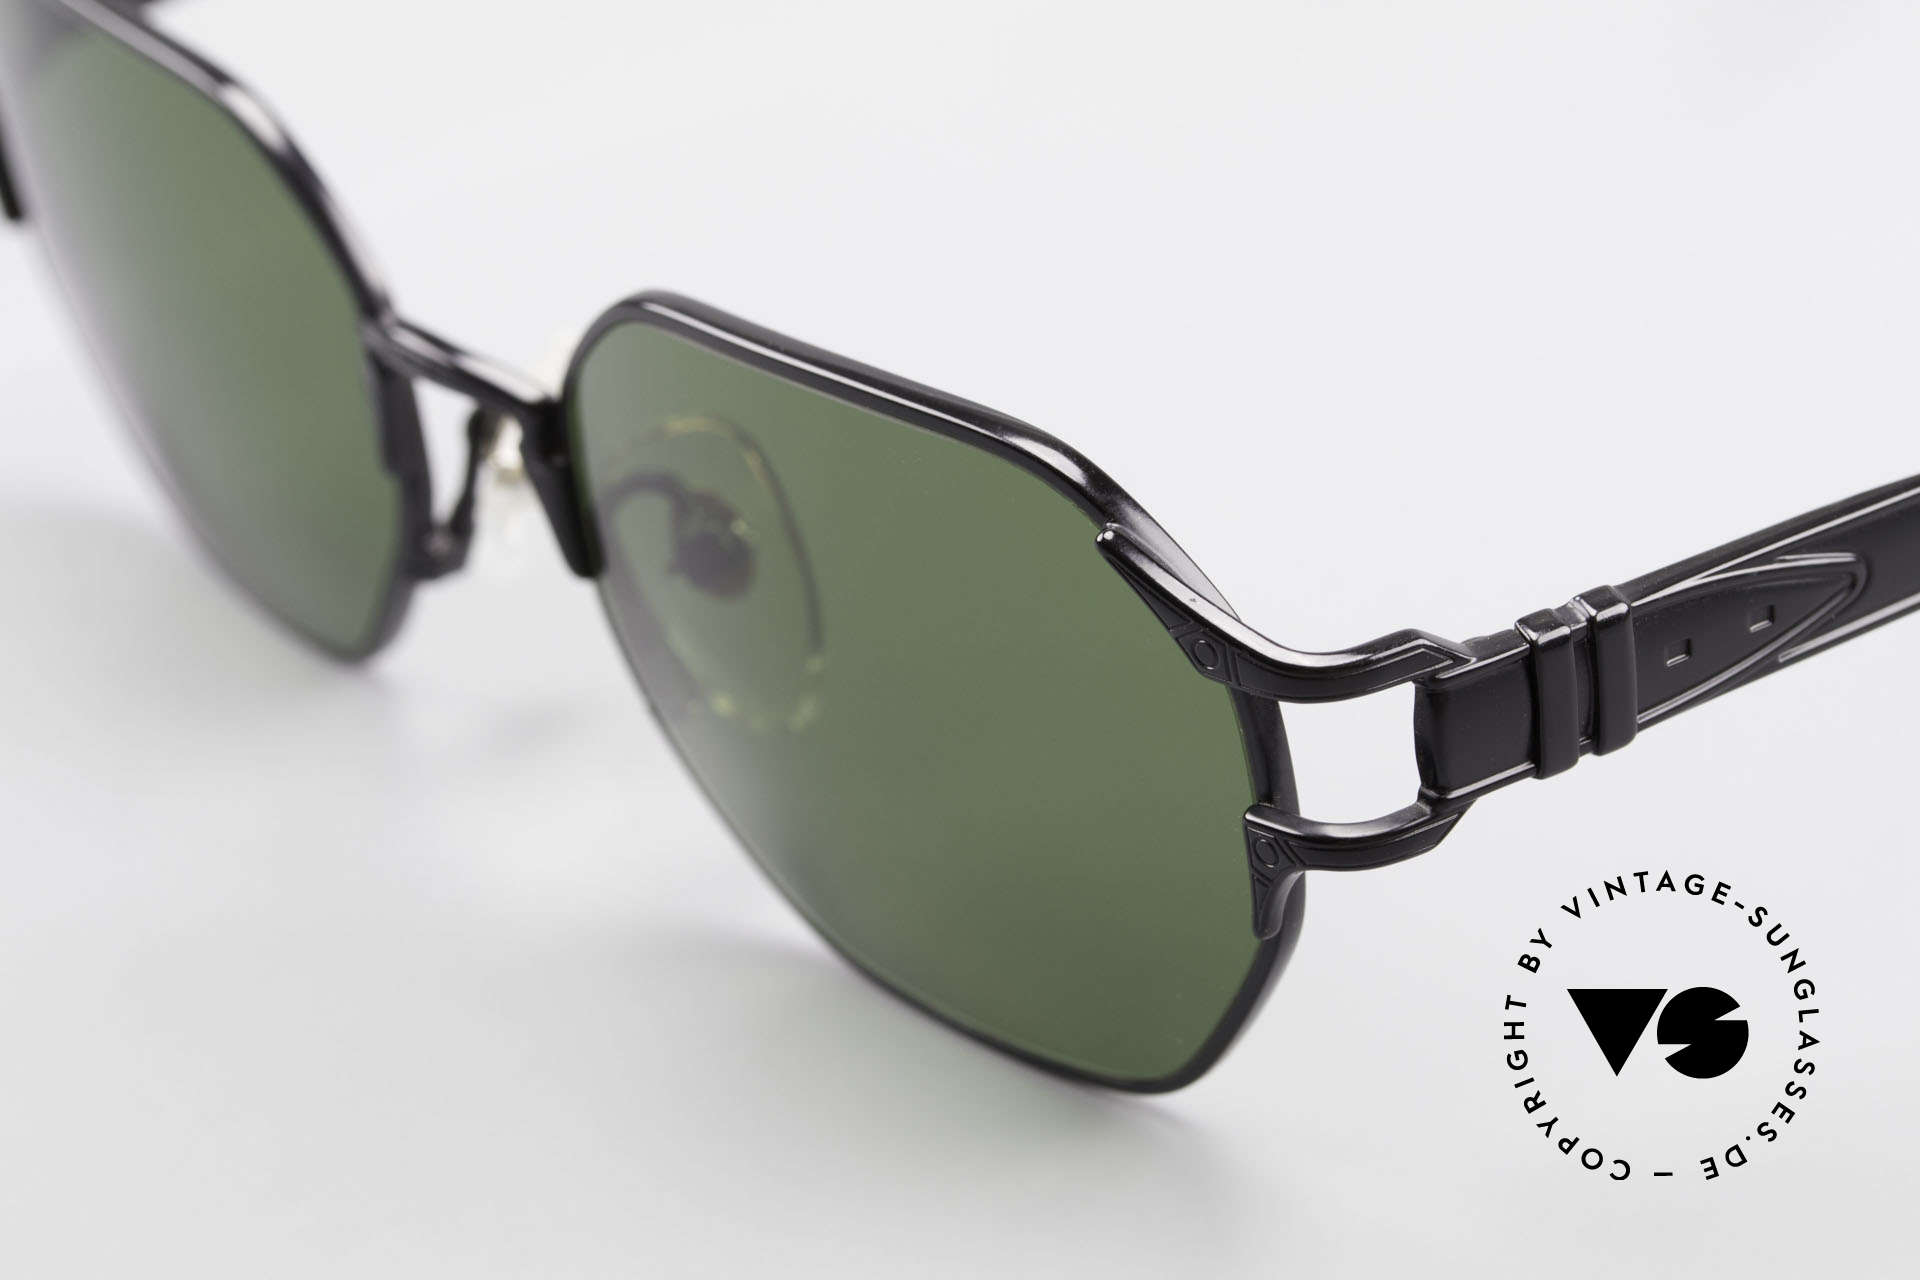 Jean Paul Gaultier 58-4173 Square JPG 90's Designer Shades, high-end CR39 sun lenses (100% UV protection), Made for Men and Women